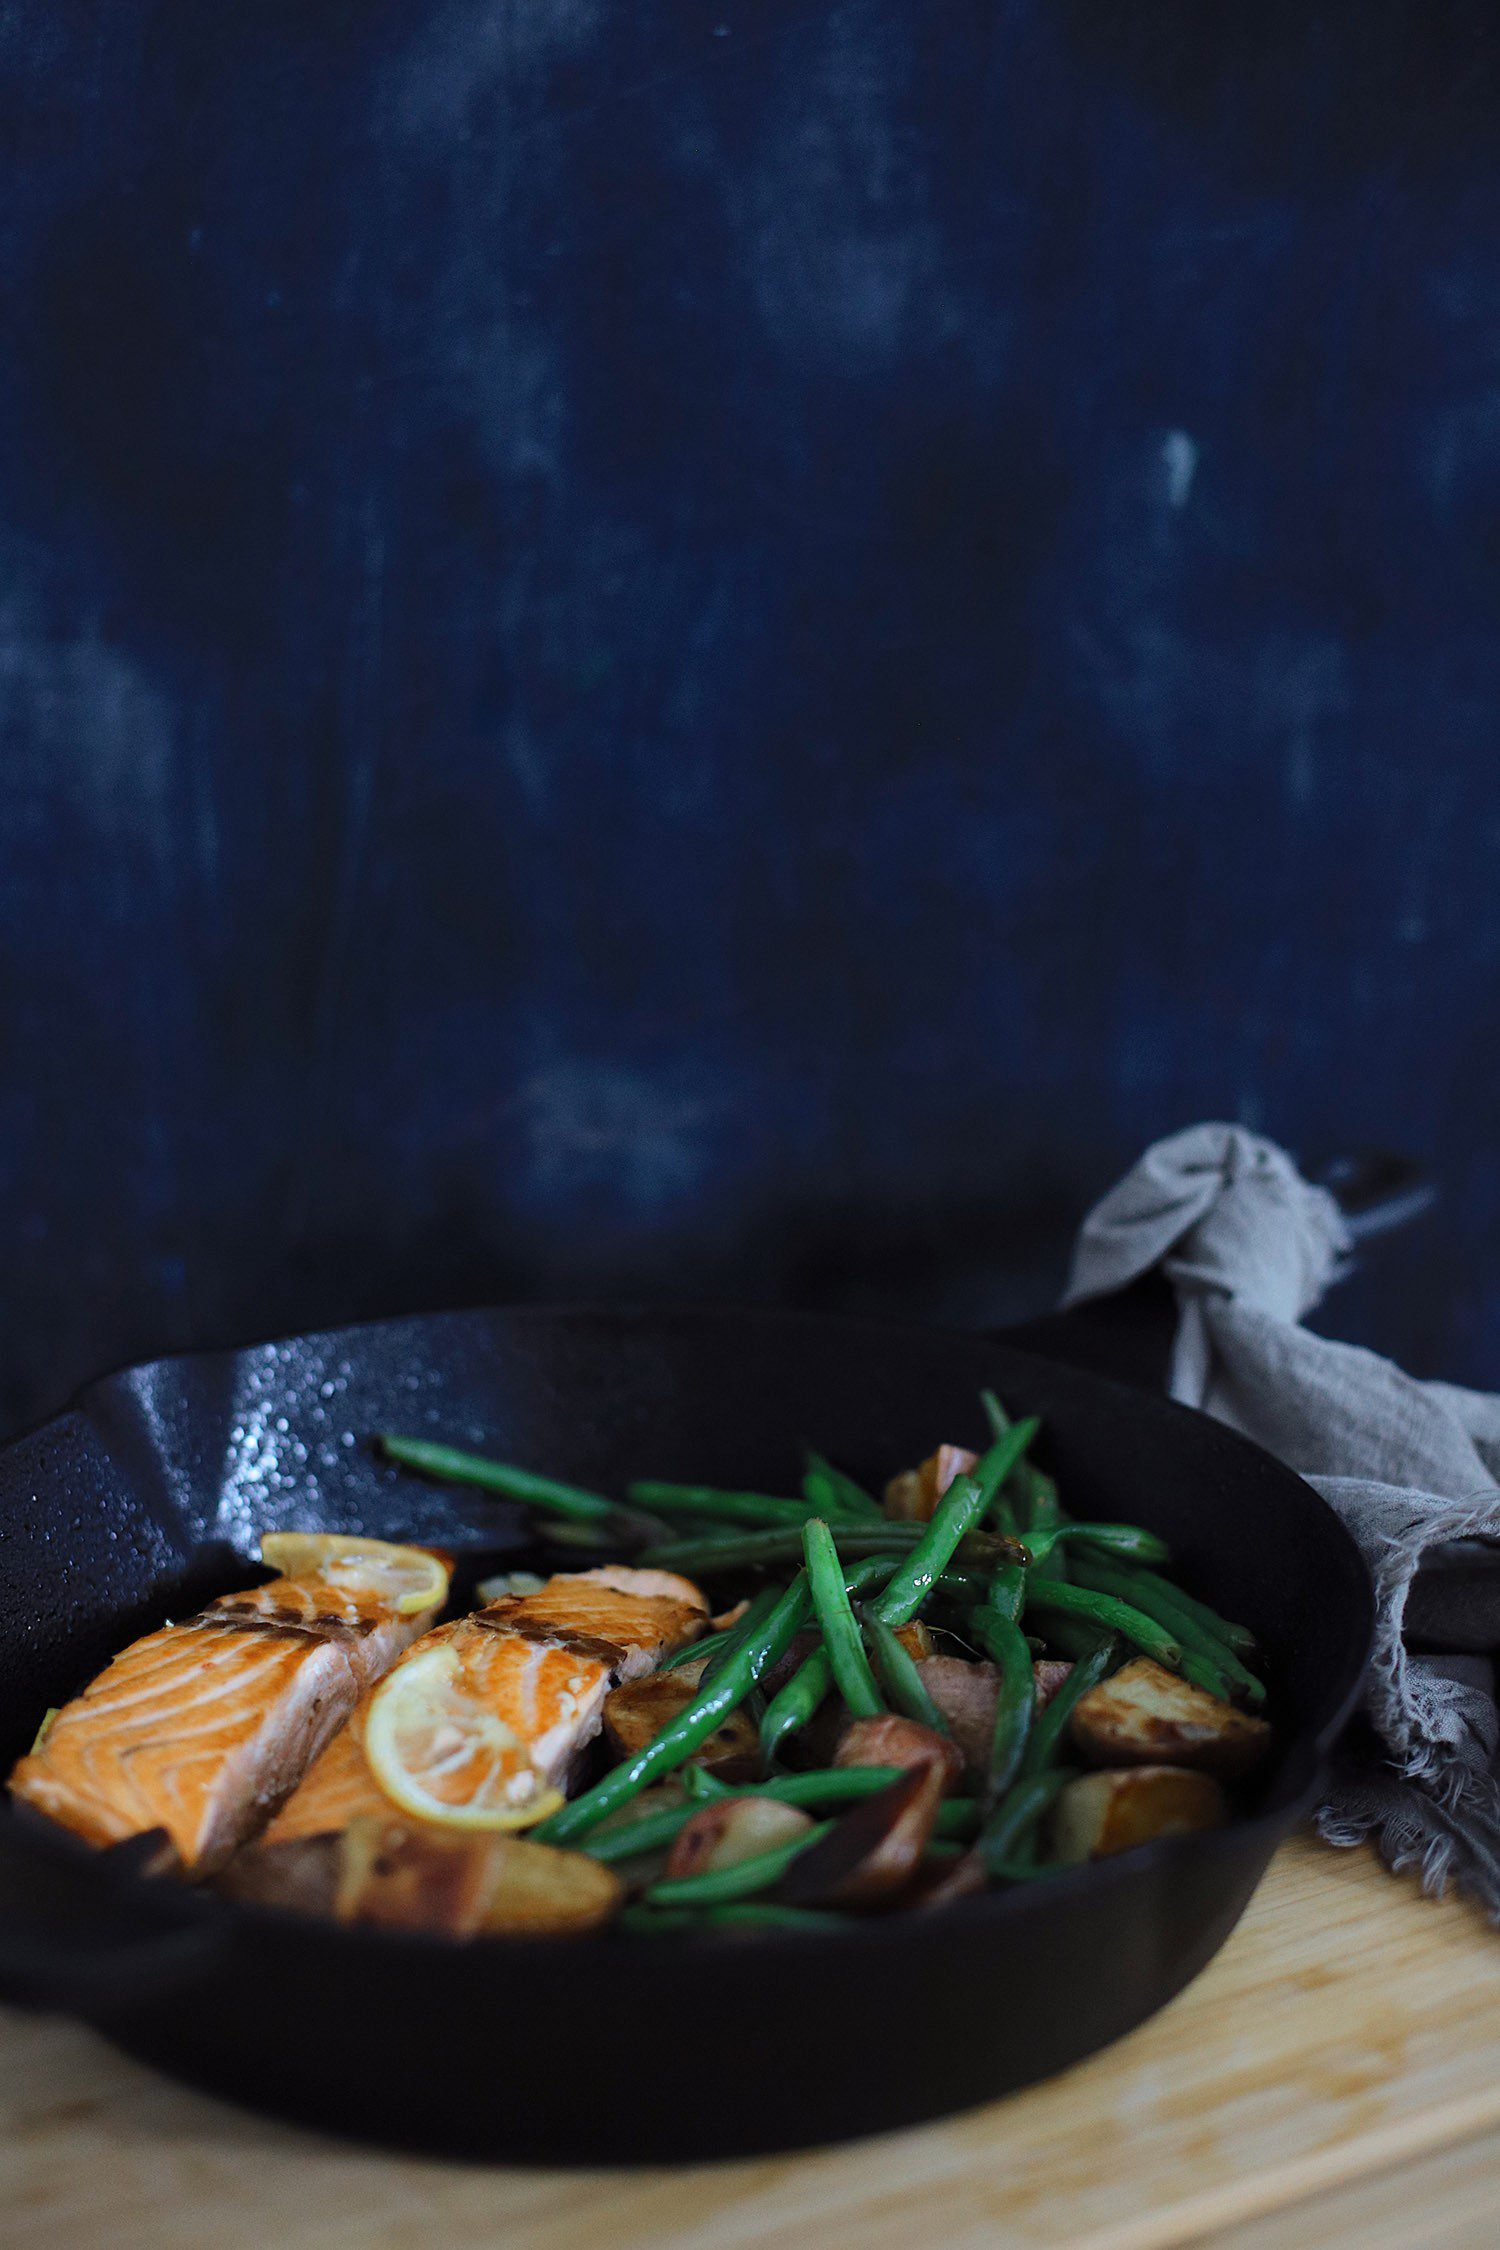 Wondering how to cook salmon? We've got such a simple and easy cast iron skillet salmon recipe with a delicious garlic lemon butter glaze. Pan seared salmon is an easy way to get it just right, every time… in fact, a kid can do it! | Salmon Skillet by possible Florida lifestyle blog, Fresh Mommy Blog: image of salmon, green beans, and potatoes in a skillet.